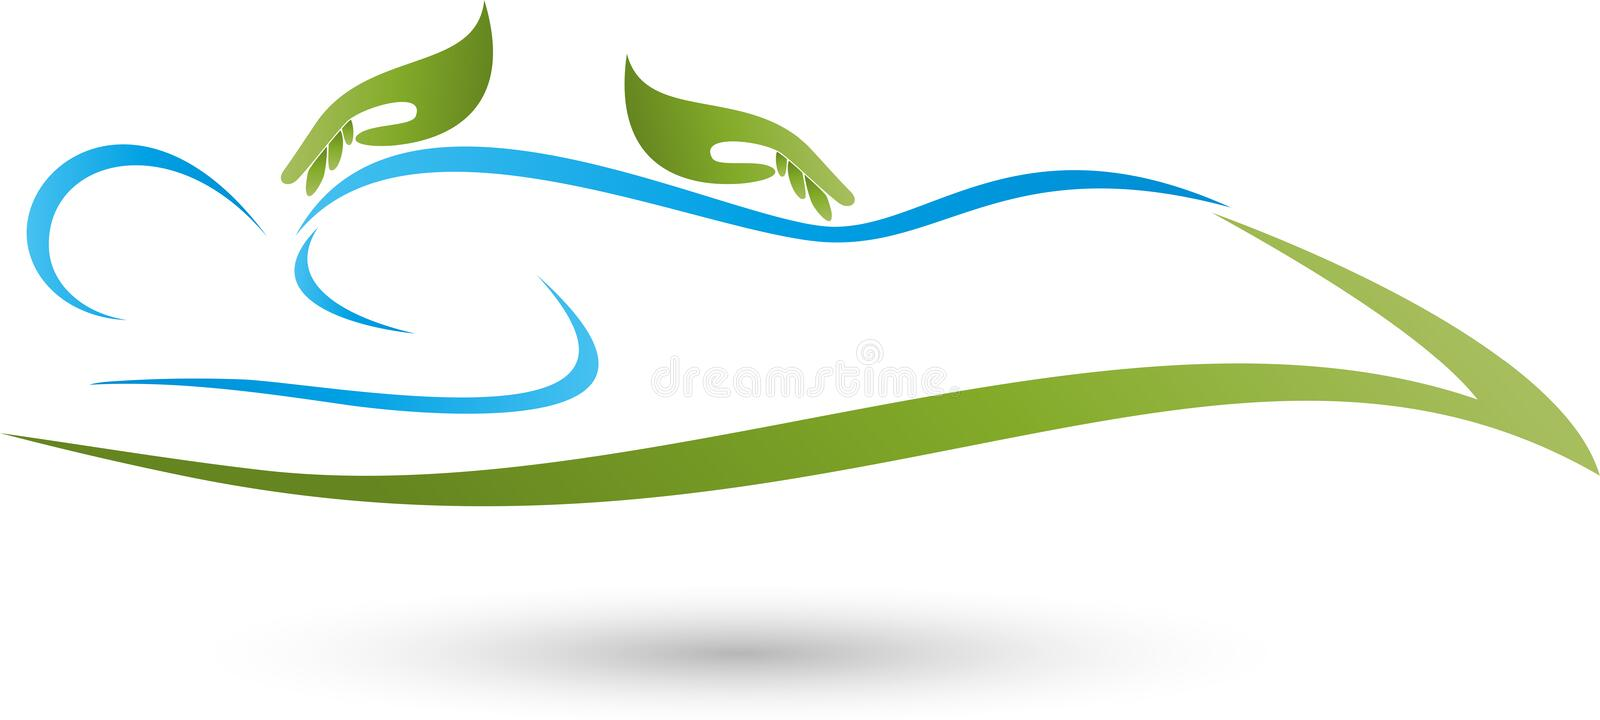 A person and two hands, massage and naturopathic logo royalty free illustration